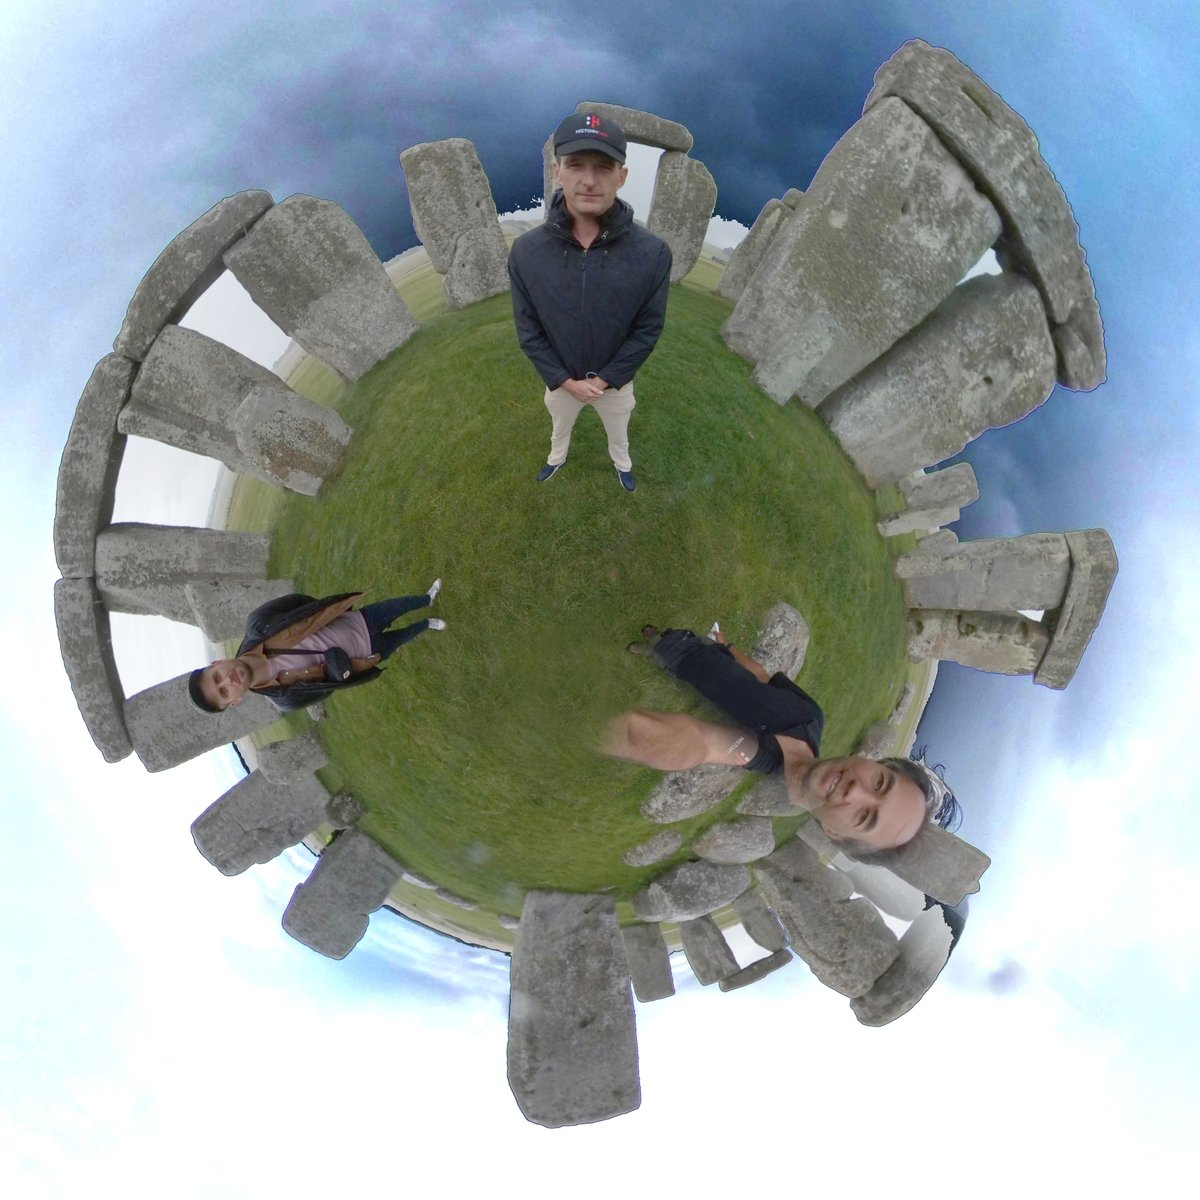 Had a great day filming with @thehistoryguy at Stonehenge last week - getting in a few days before it opens to the public this weekend. Heres a #littleplanet #360 view! The film will be on @historyhit TV soon.